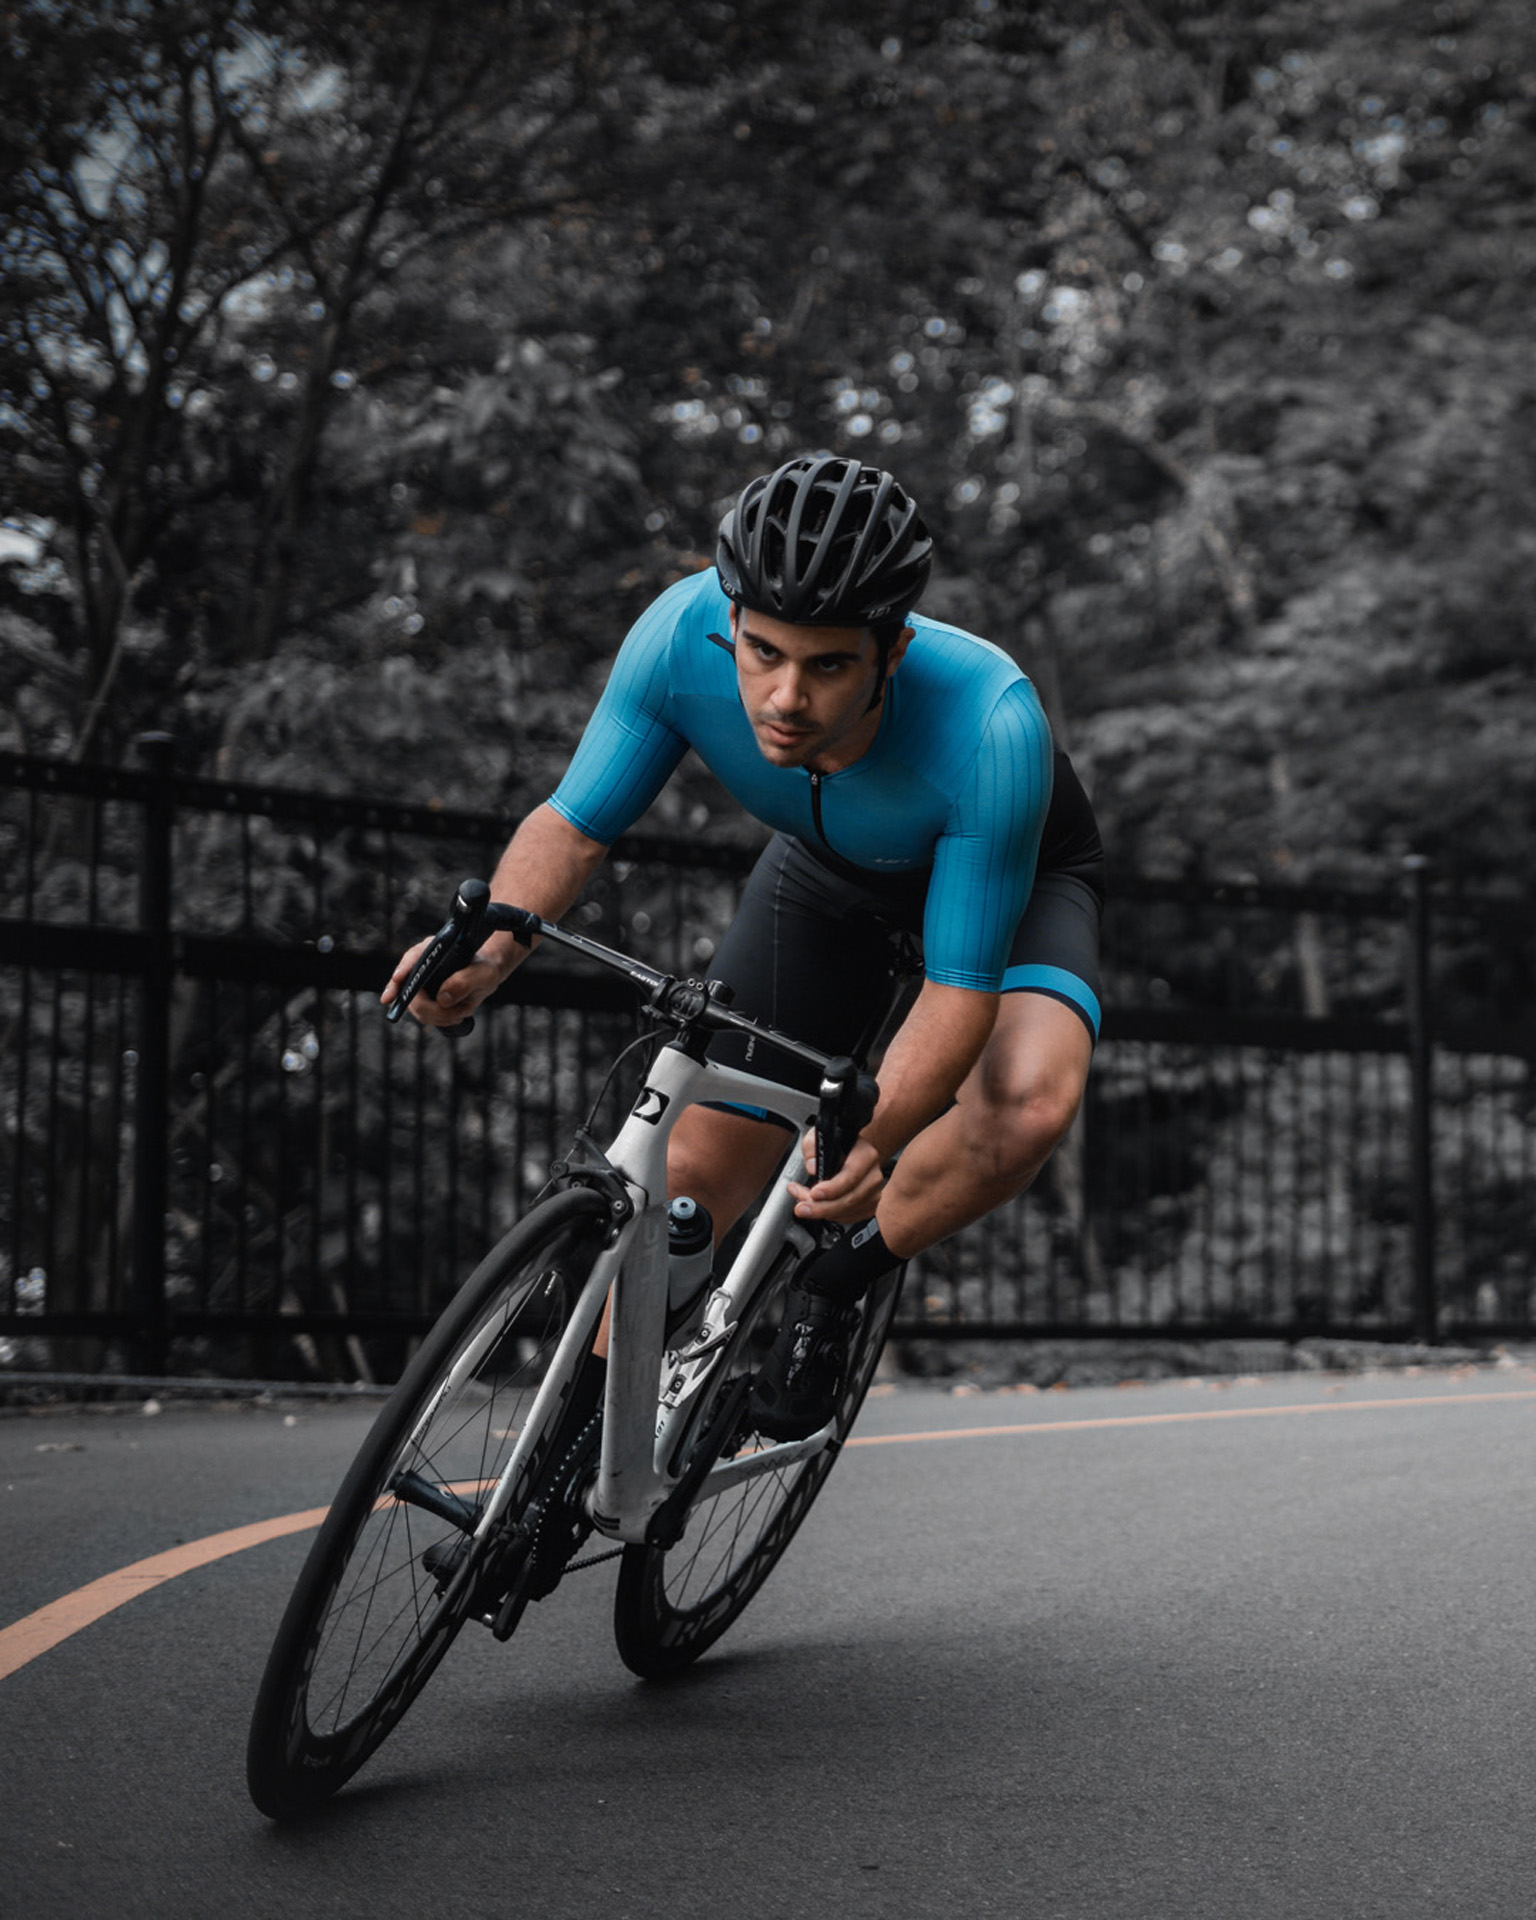 male model wearing black bike helmet and black and blue biking bodysuit biking on road on a white sports bike for Spring Summer 2020 campaign of Louis Garneau with artistic direction and styling by Studio TB